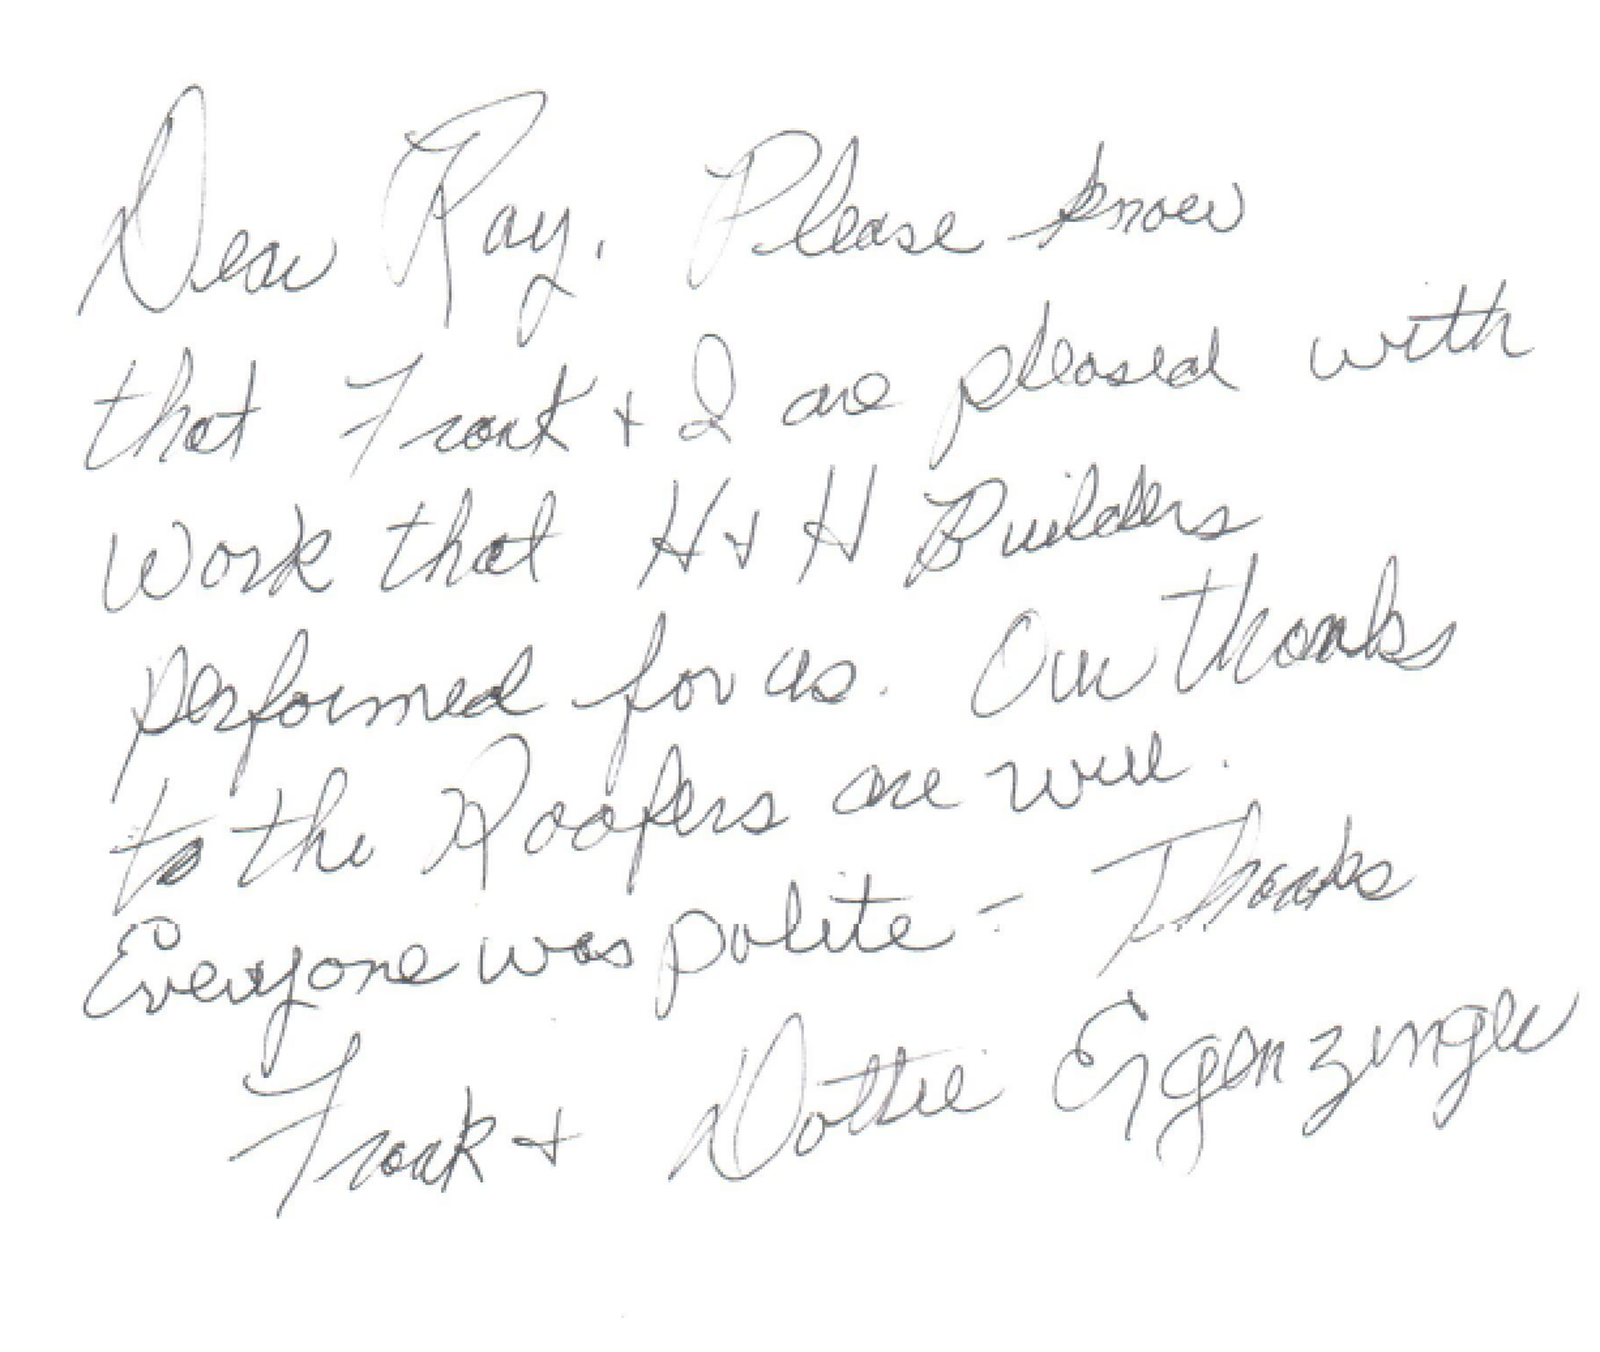 Written testimonial from one of H&H Builders' previous clients